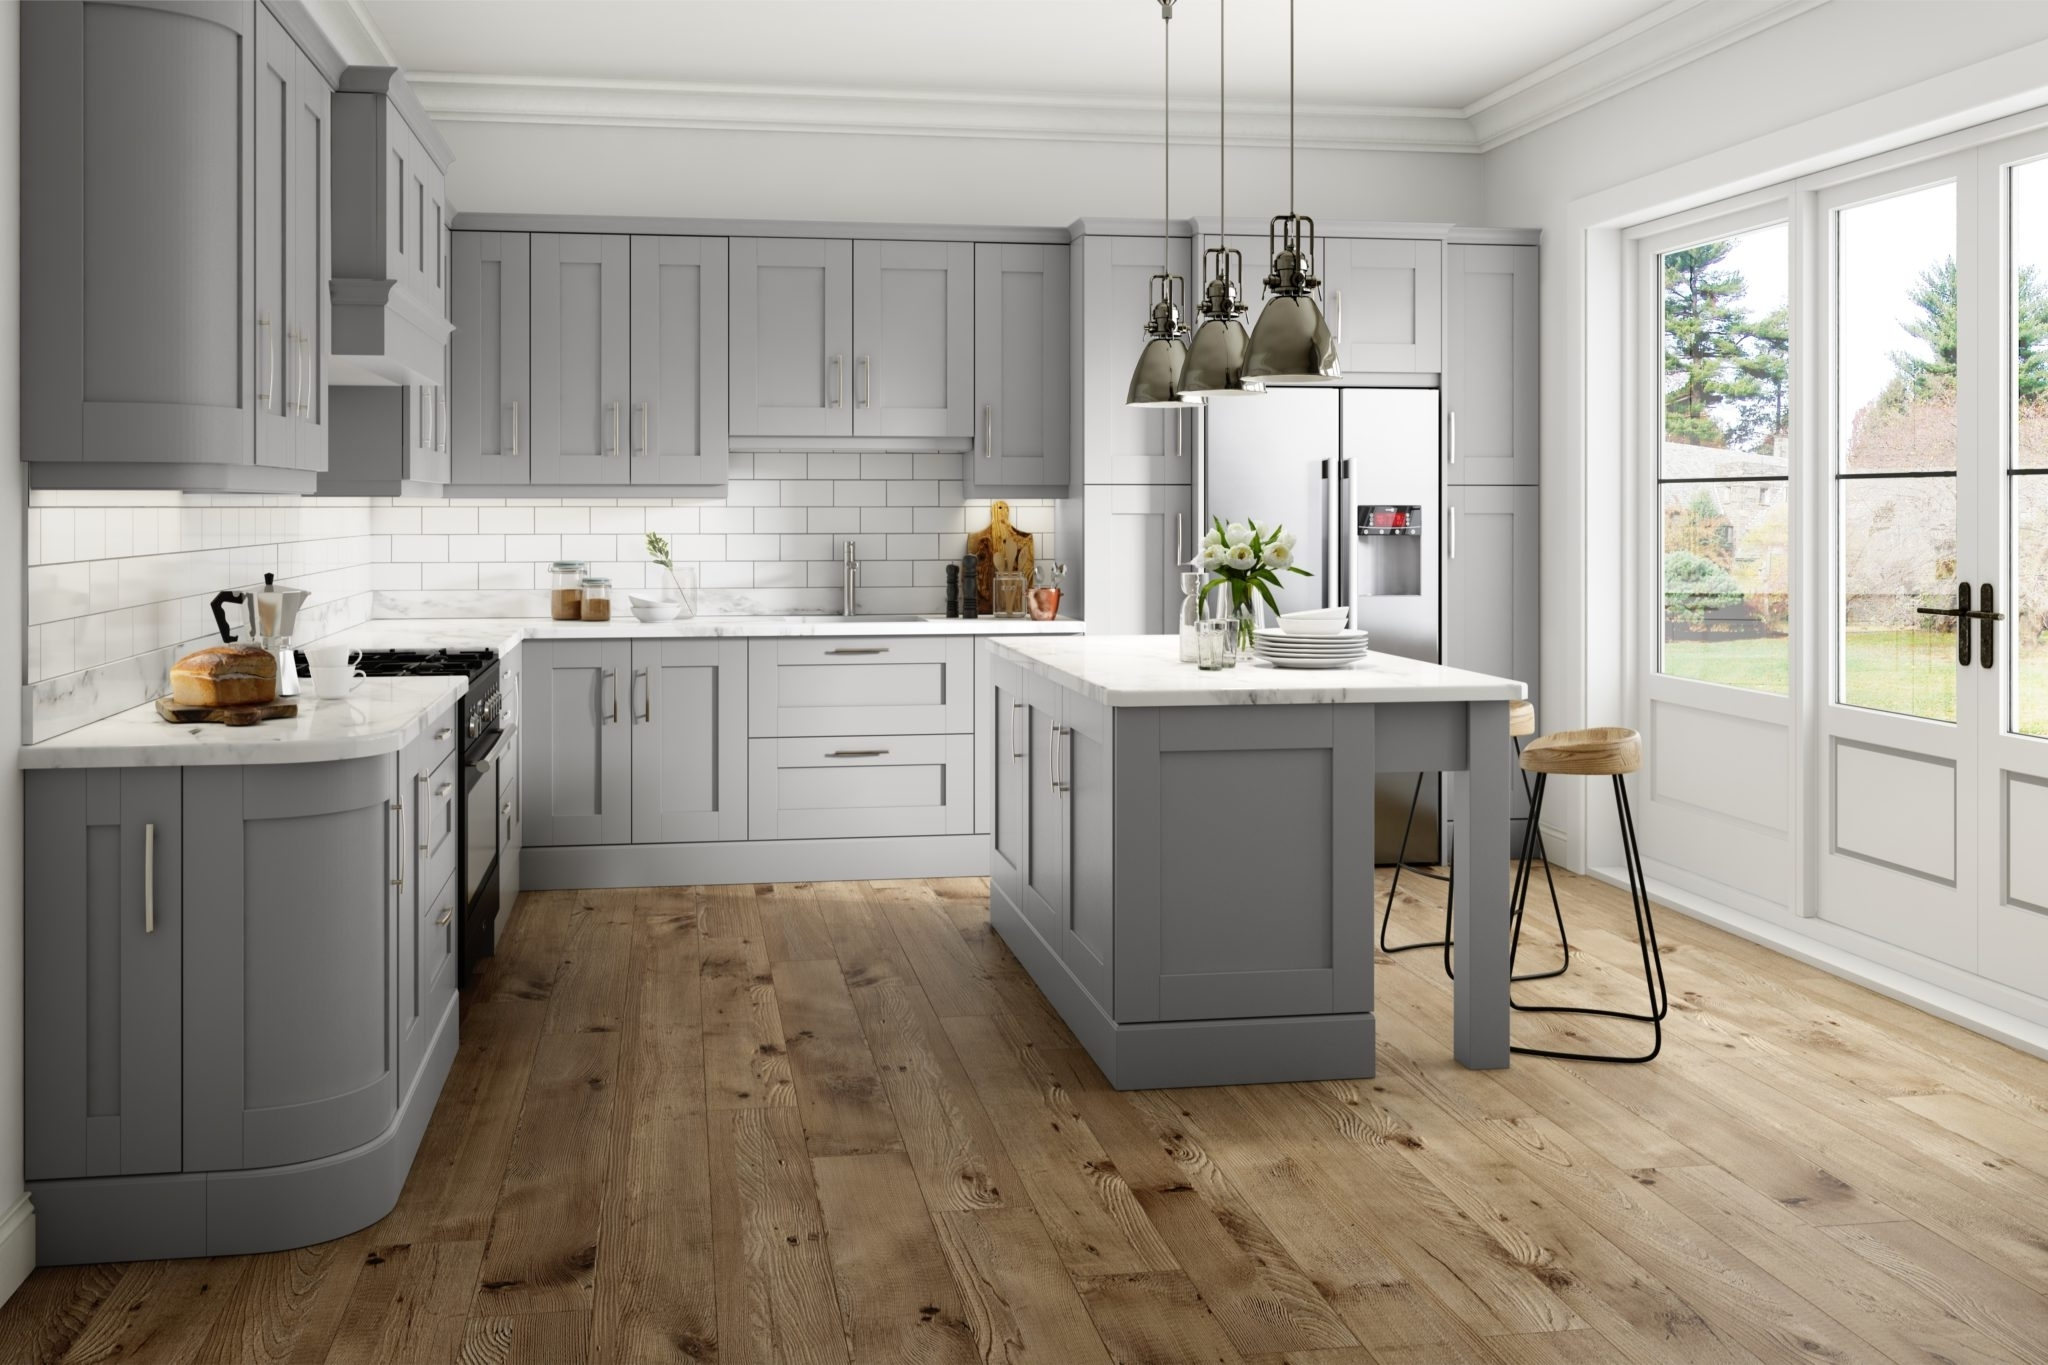 Light Grey Kitchen Cabinets #0 – Made To Measure Kitchens Kitchen Throughout Latest Made To Measure Cabinets (View 5 of 15)